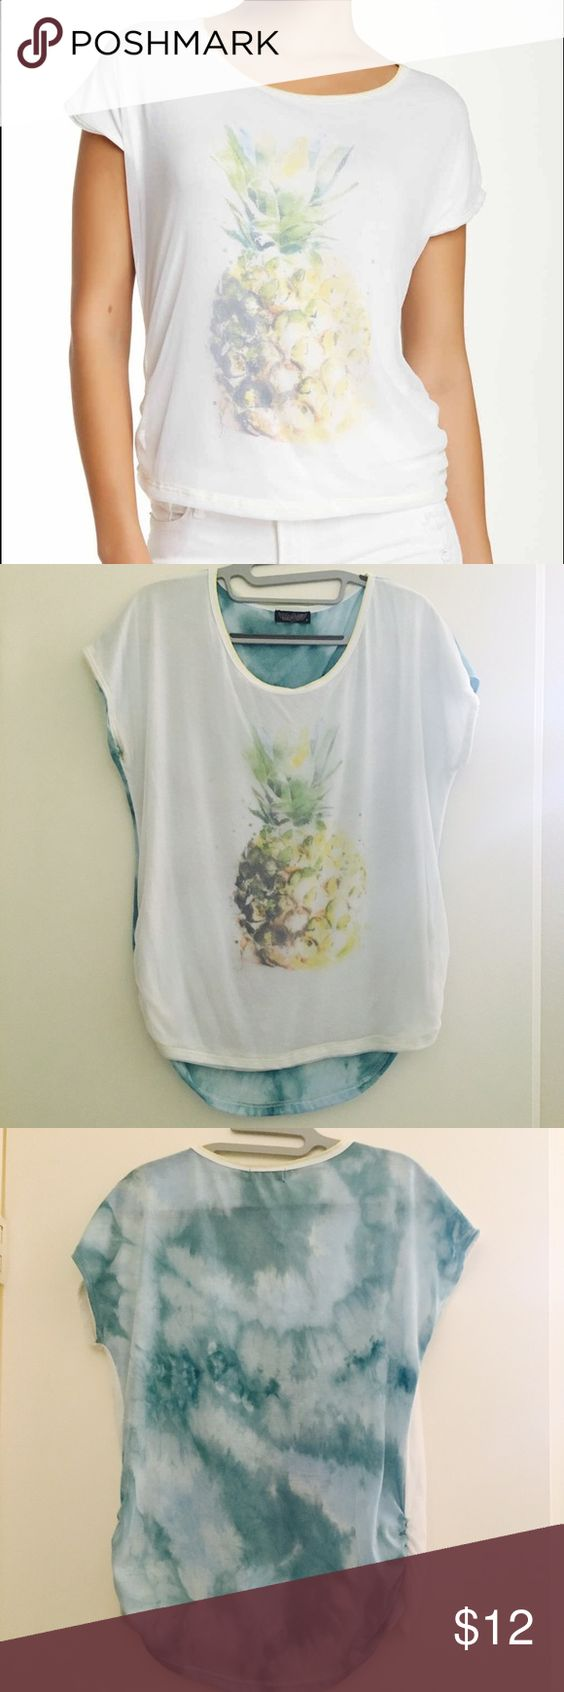 Vanilla Sugar Pineapple Mesh Tee Top Cute Short sleeve top. White front with pineapple design, mesh overlay. Back is a teal blue tie dyed color. Sides are sewn with a ruffle. Cute summer or vacation top. Worn a few times. From Nordstrom. Vanilla Sugar Tops Tees - Short Sleeve